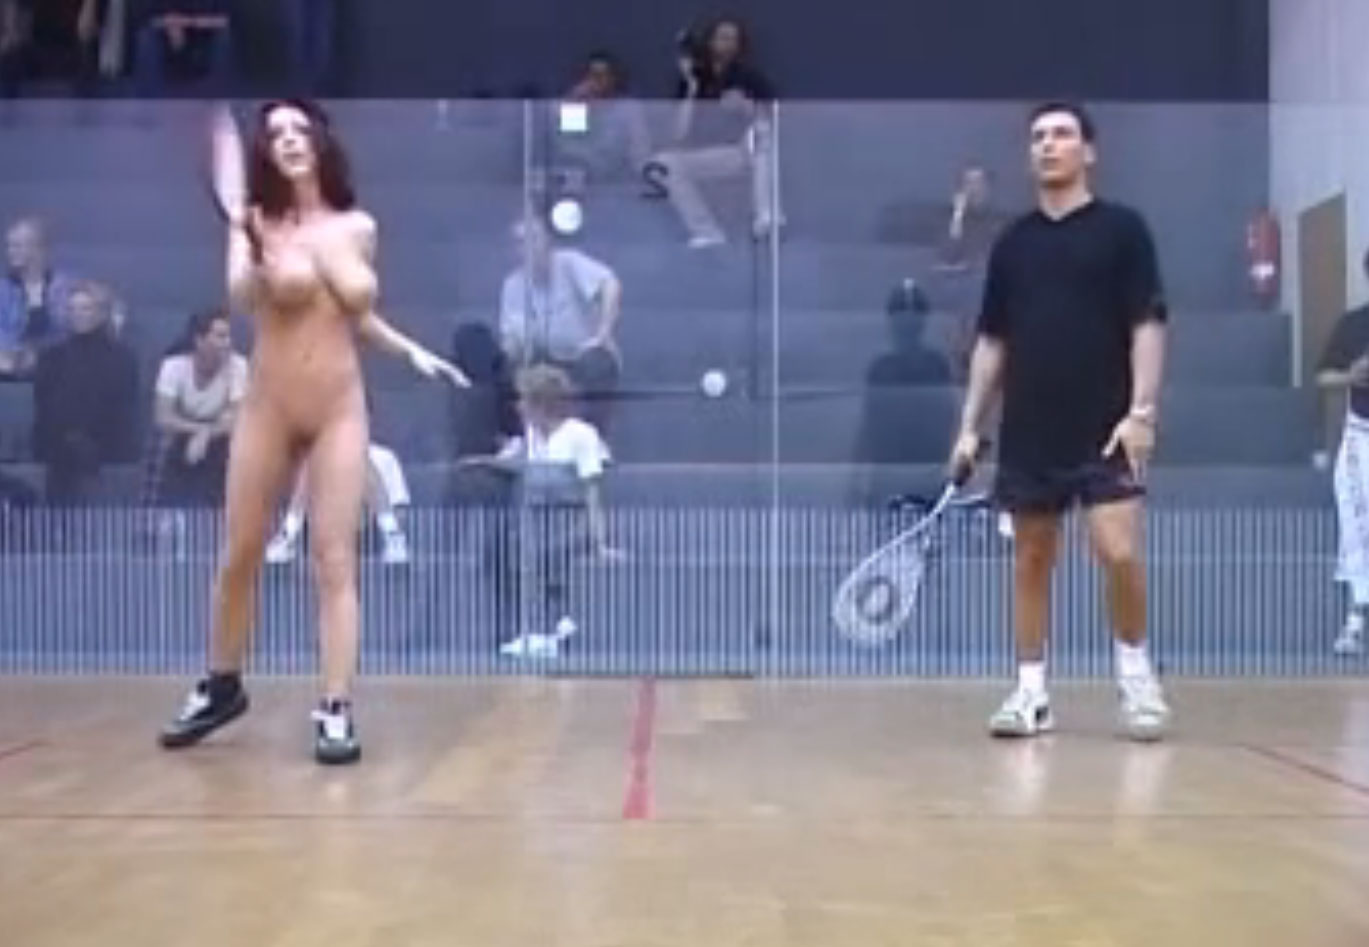 Naked in public after losing a squash game